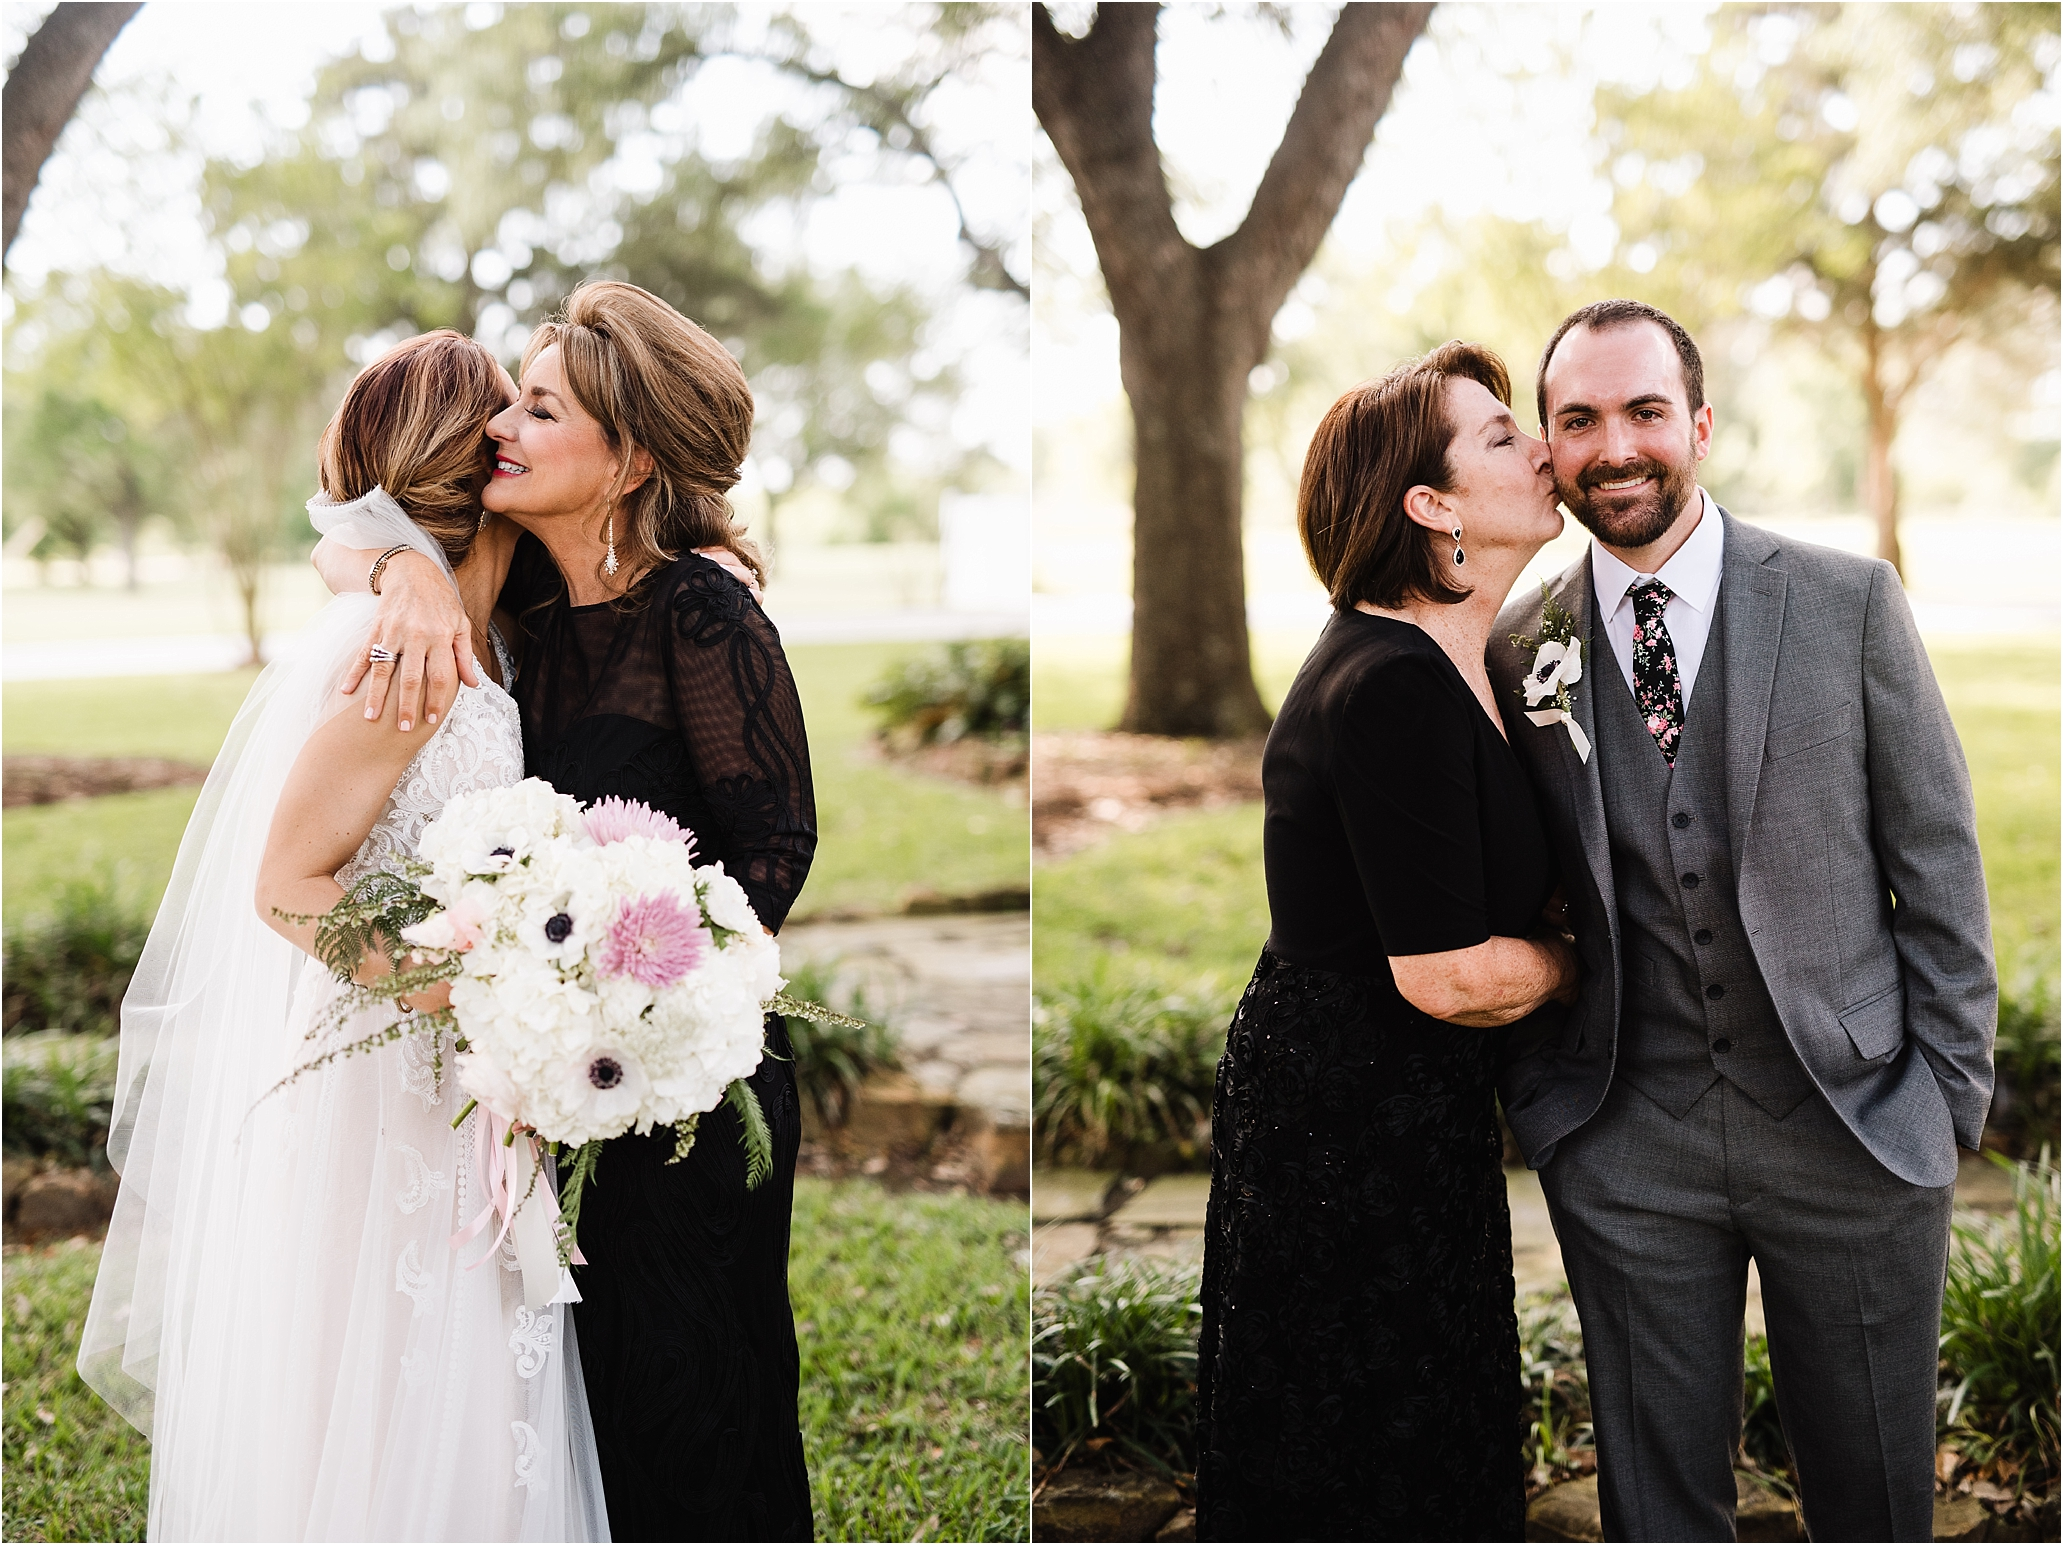 PattisonHouse_TexasWeddingPhotographer_CarlyCrockett&MattBrownWedding_0094.jpg